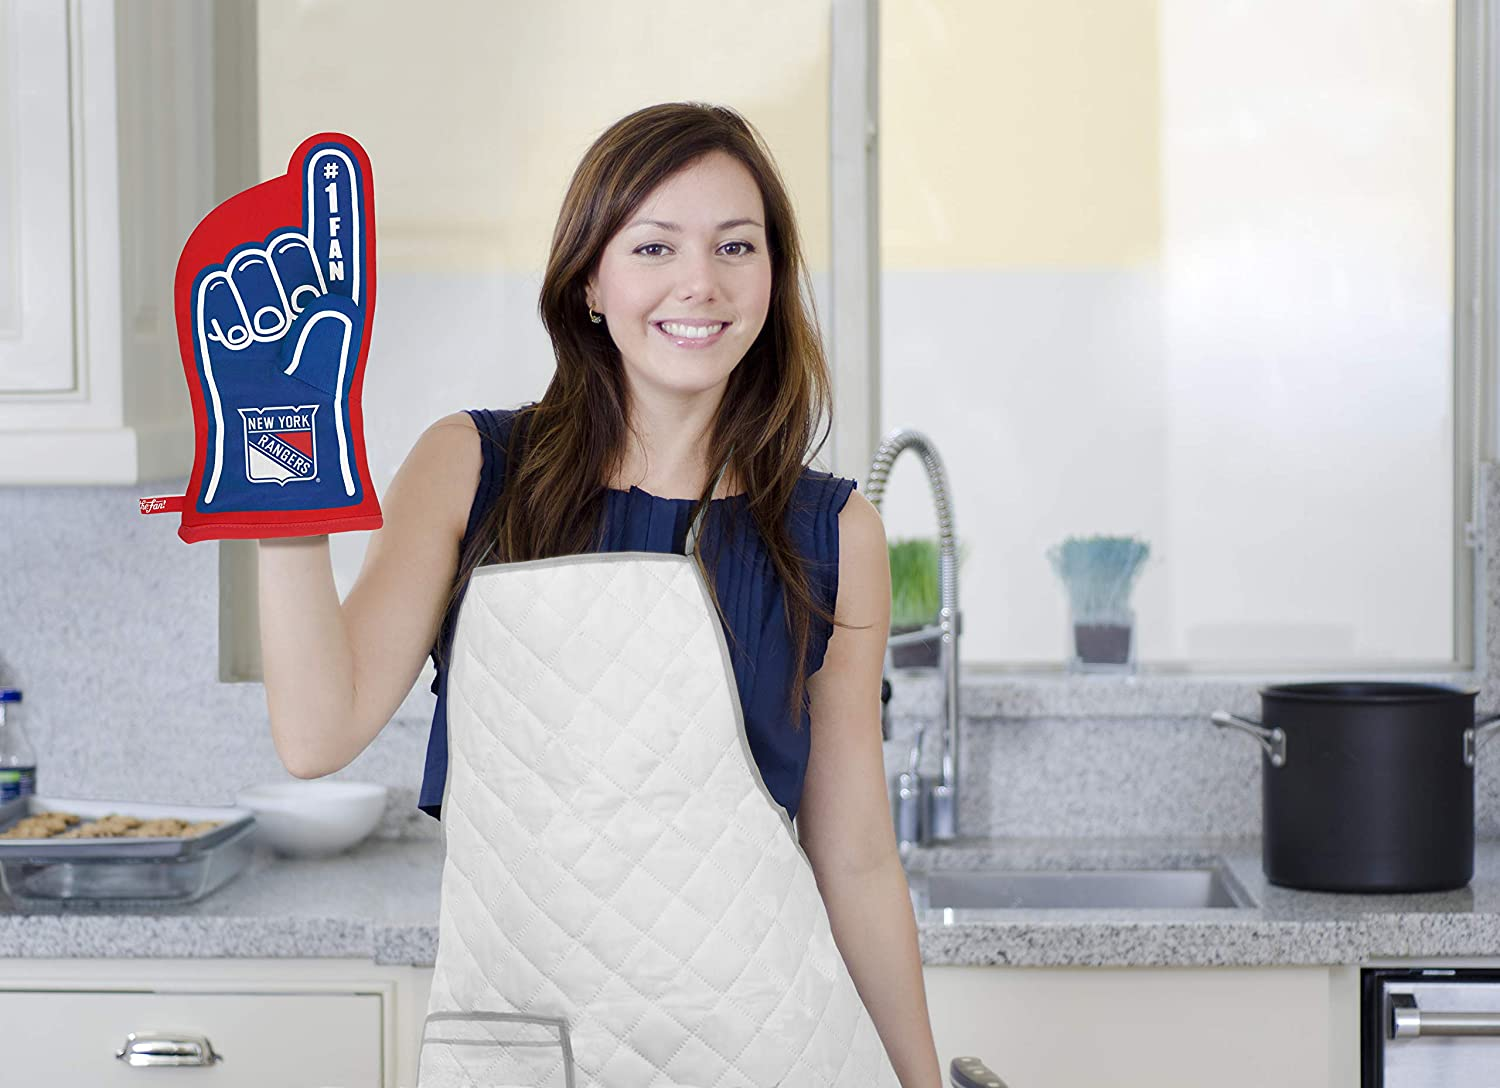 13.25 x 6.5 Heat Resistant 100/% Quilted Cotton Team Oven Mitt YouTheFan NHL #1 Oven Mitt